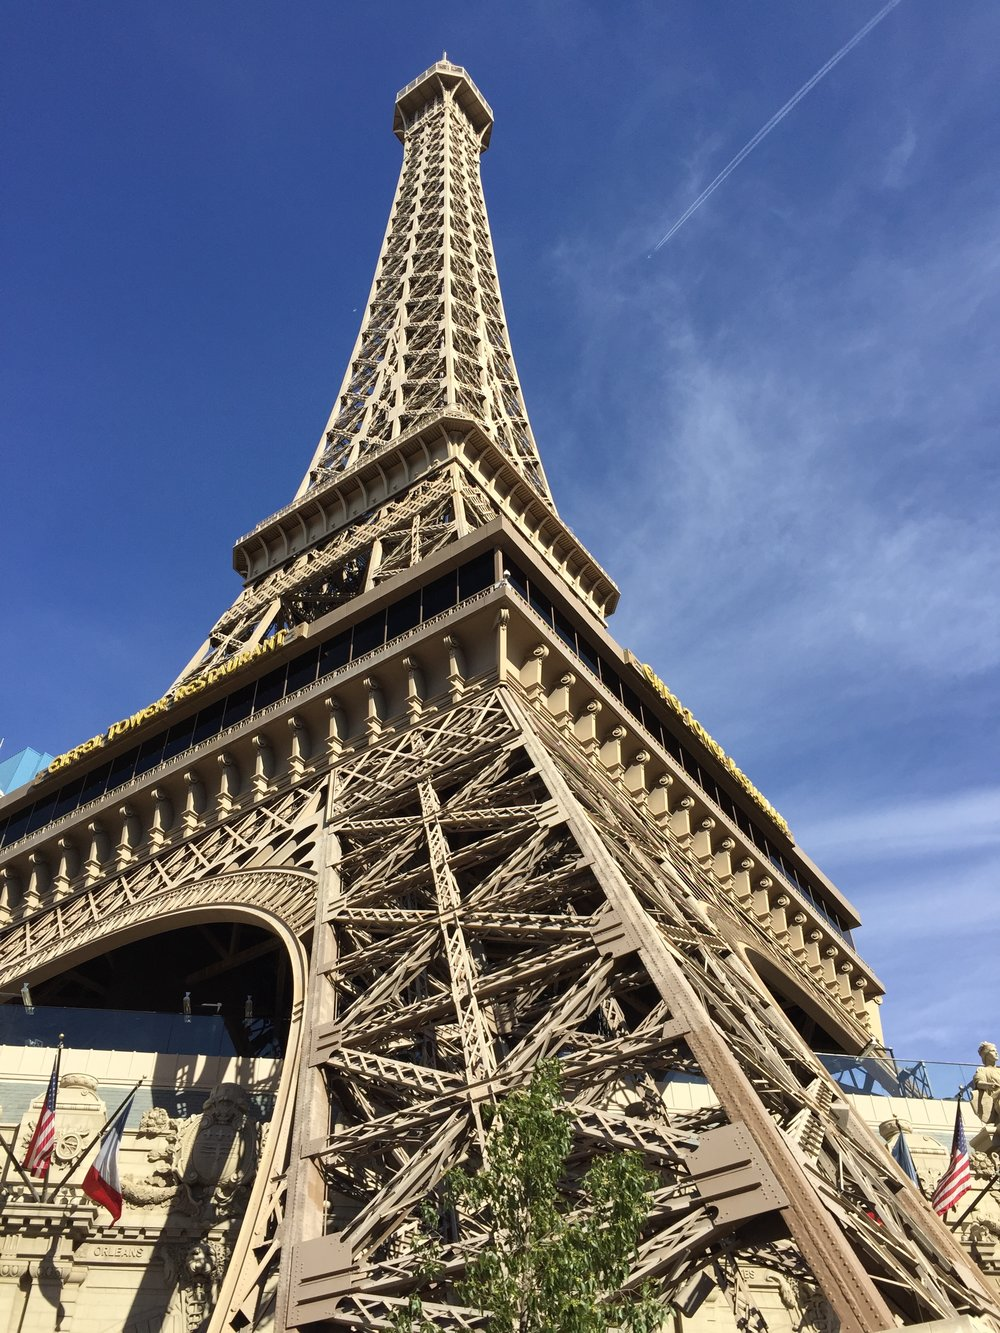 Eiffel Tower, Las Vegas, United States